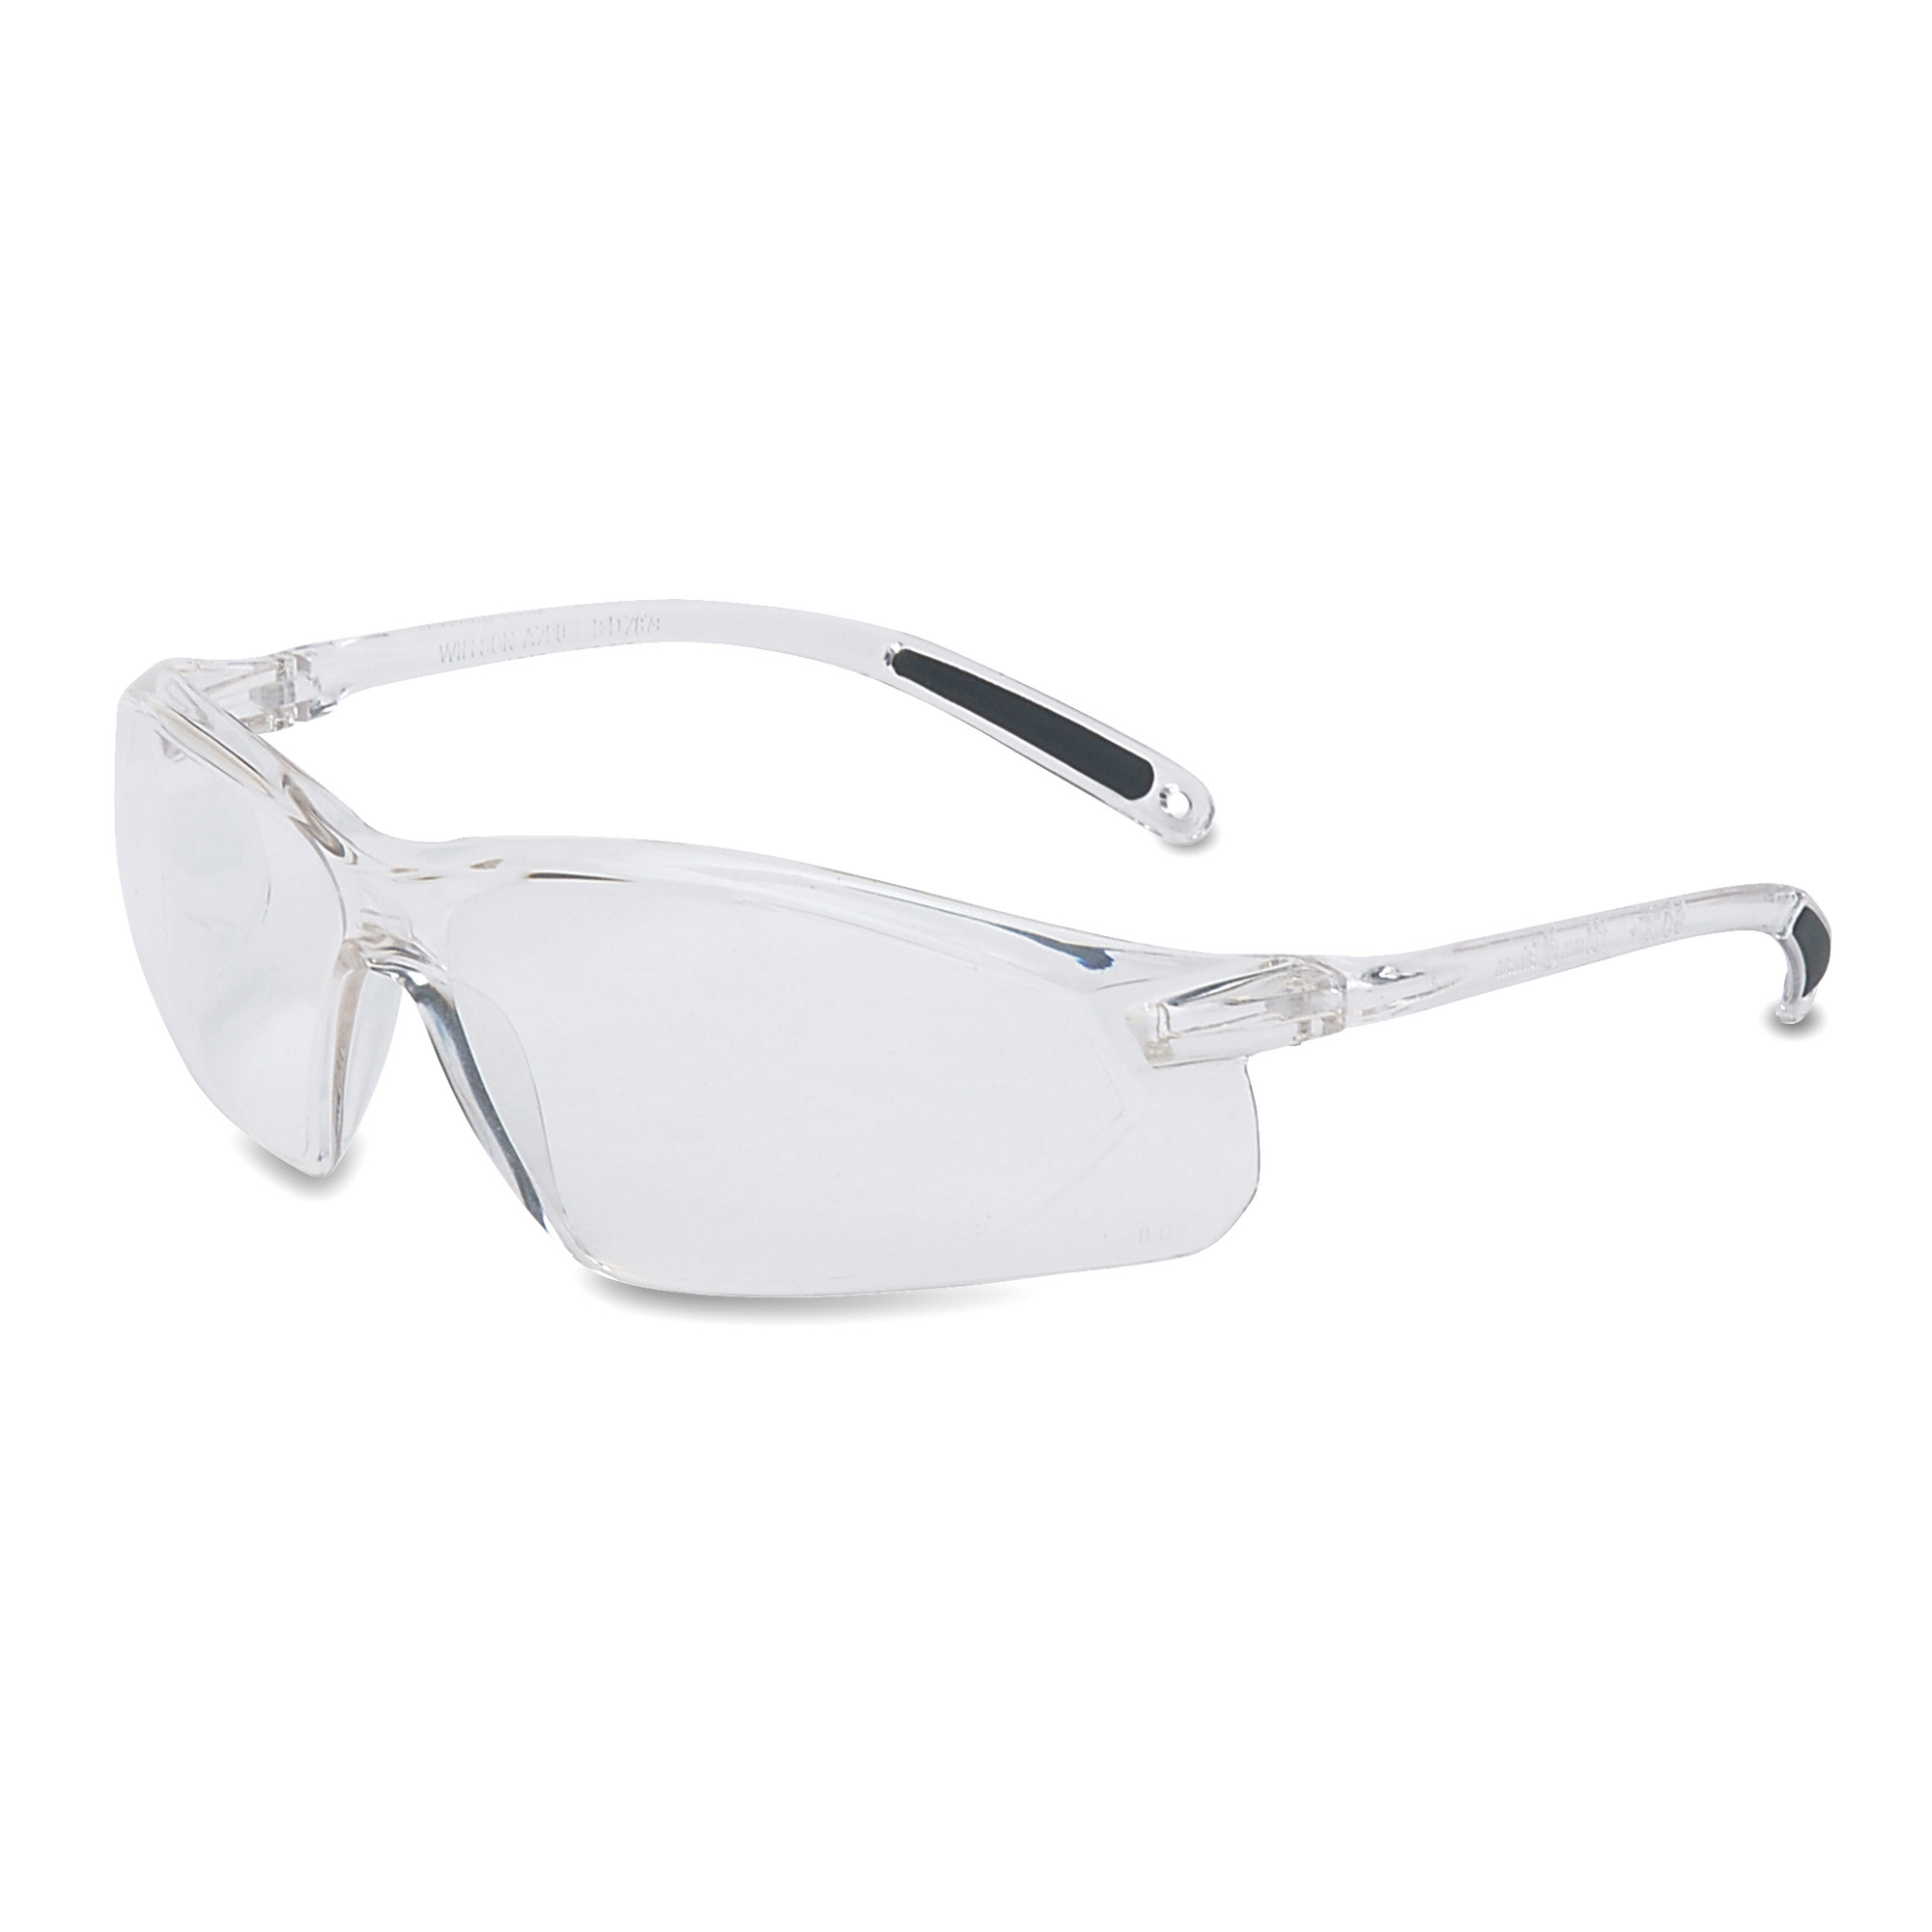 """The A750 is smaller than the original A700 series"""" for shooters with smaller or narrow face profiles. These glasses feature Anti-scratch coating"""" Polycarbonate lenses and a molded universal nose bridge."""